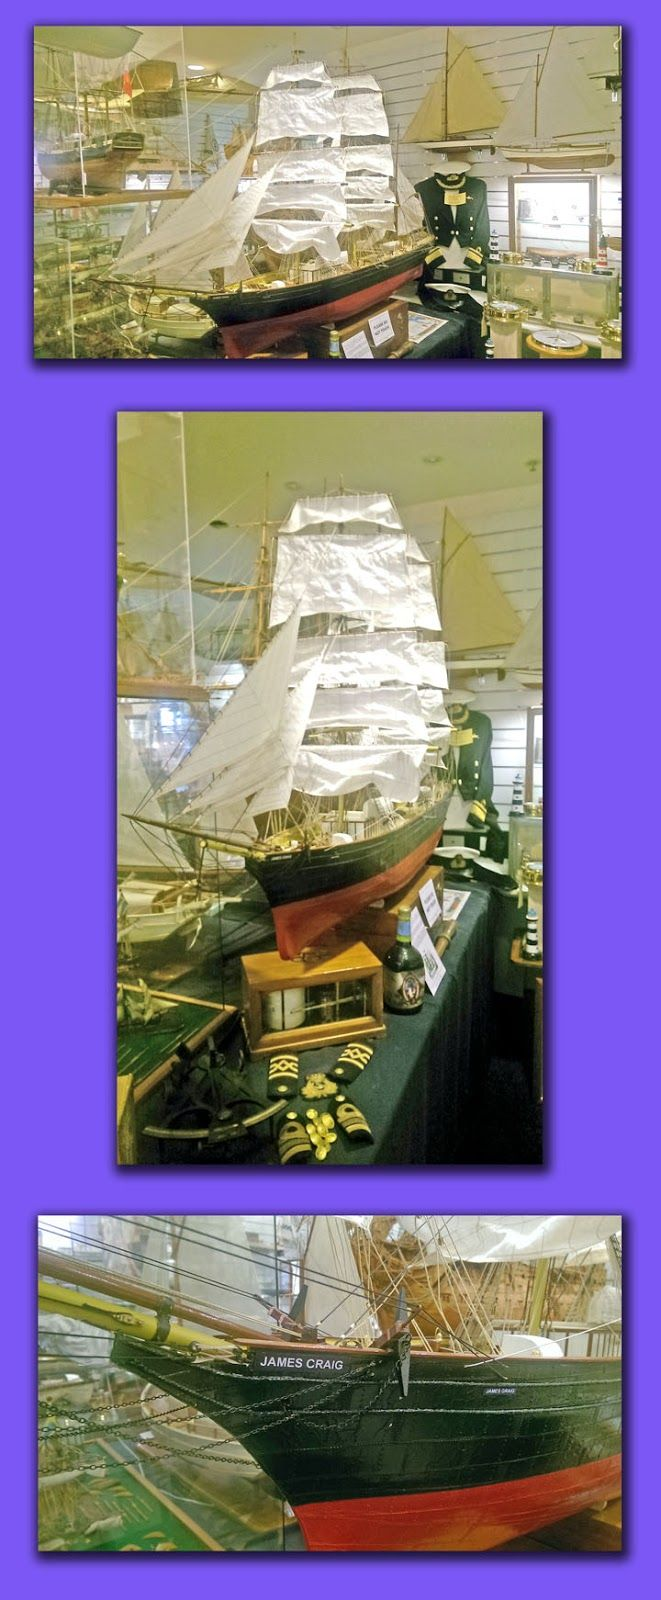 Maritime Model Museum: A 2 metre long model THE JAMES CRAIG taking pride of place in our collection